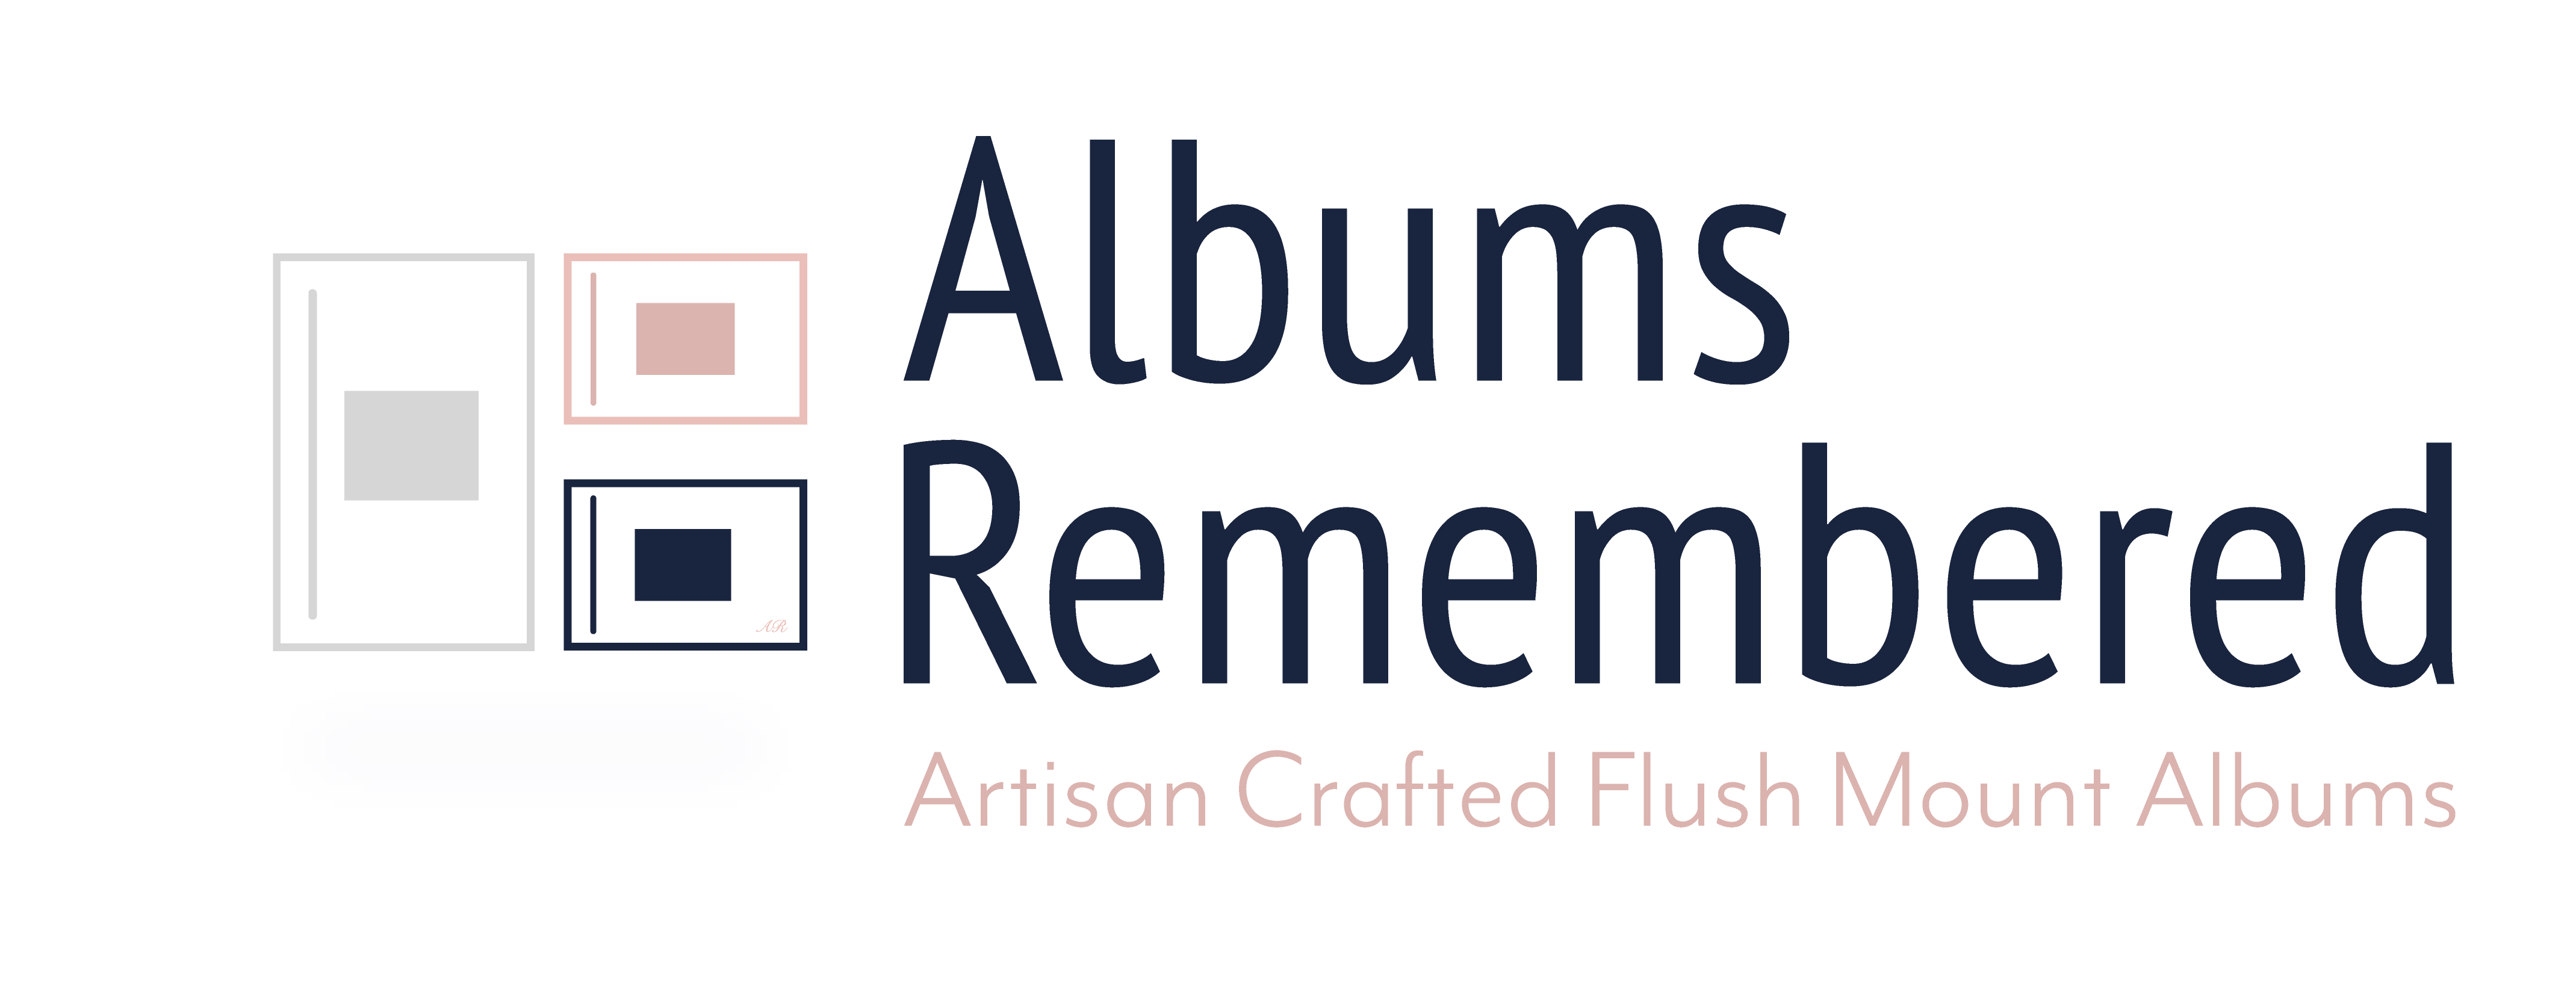 Albums Remembered Inc.